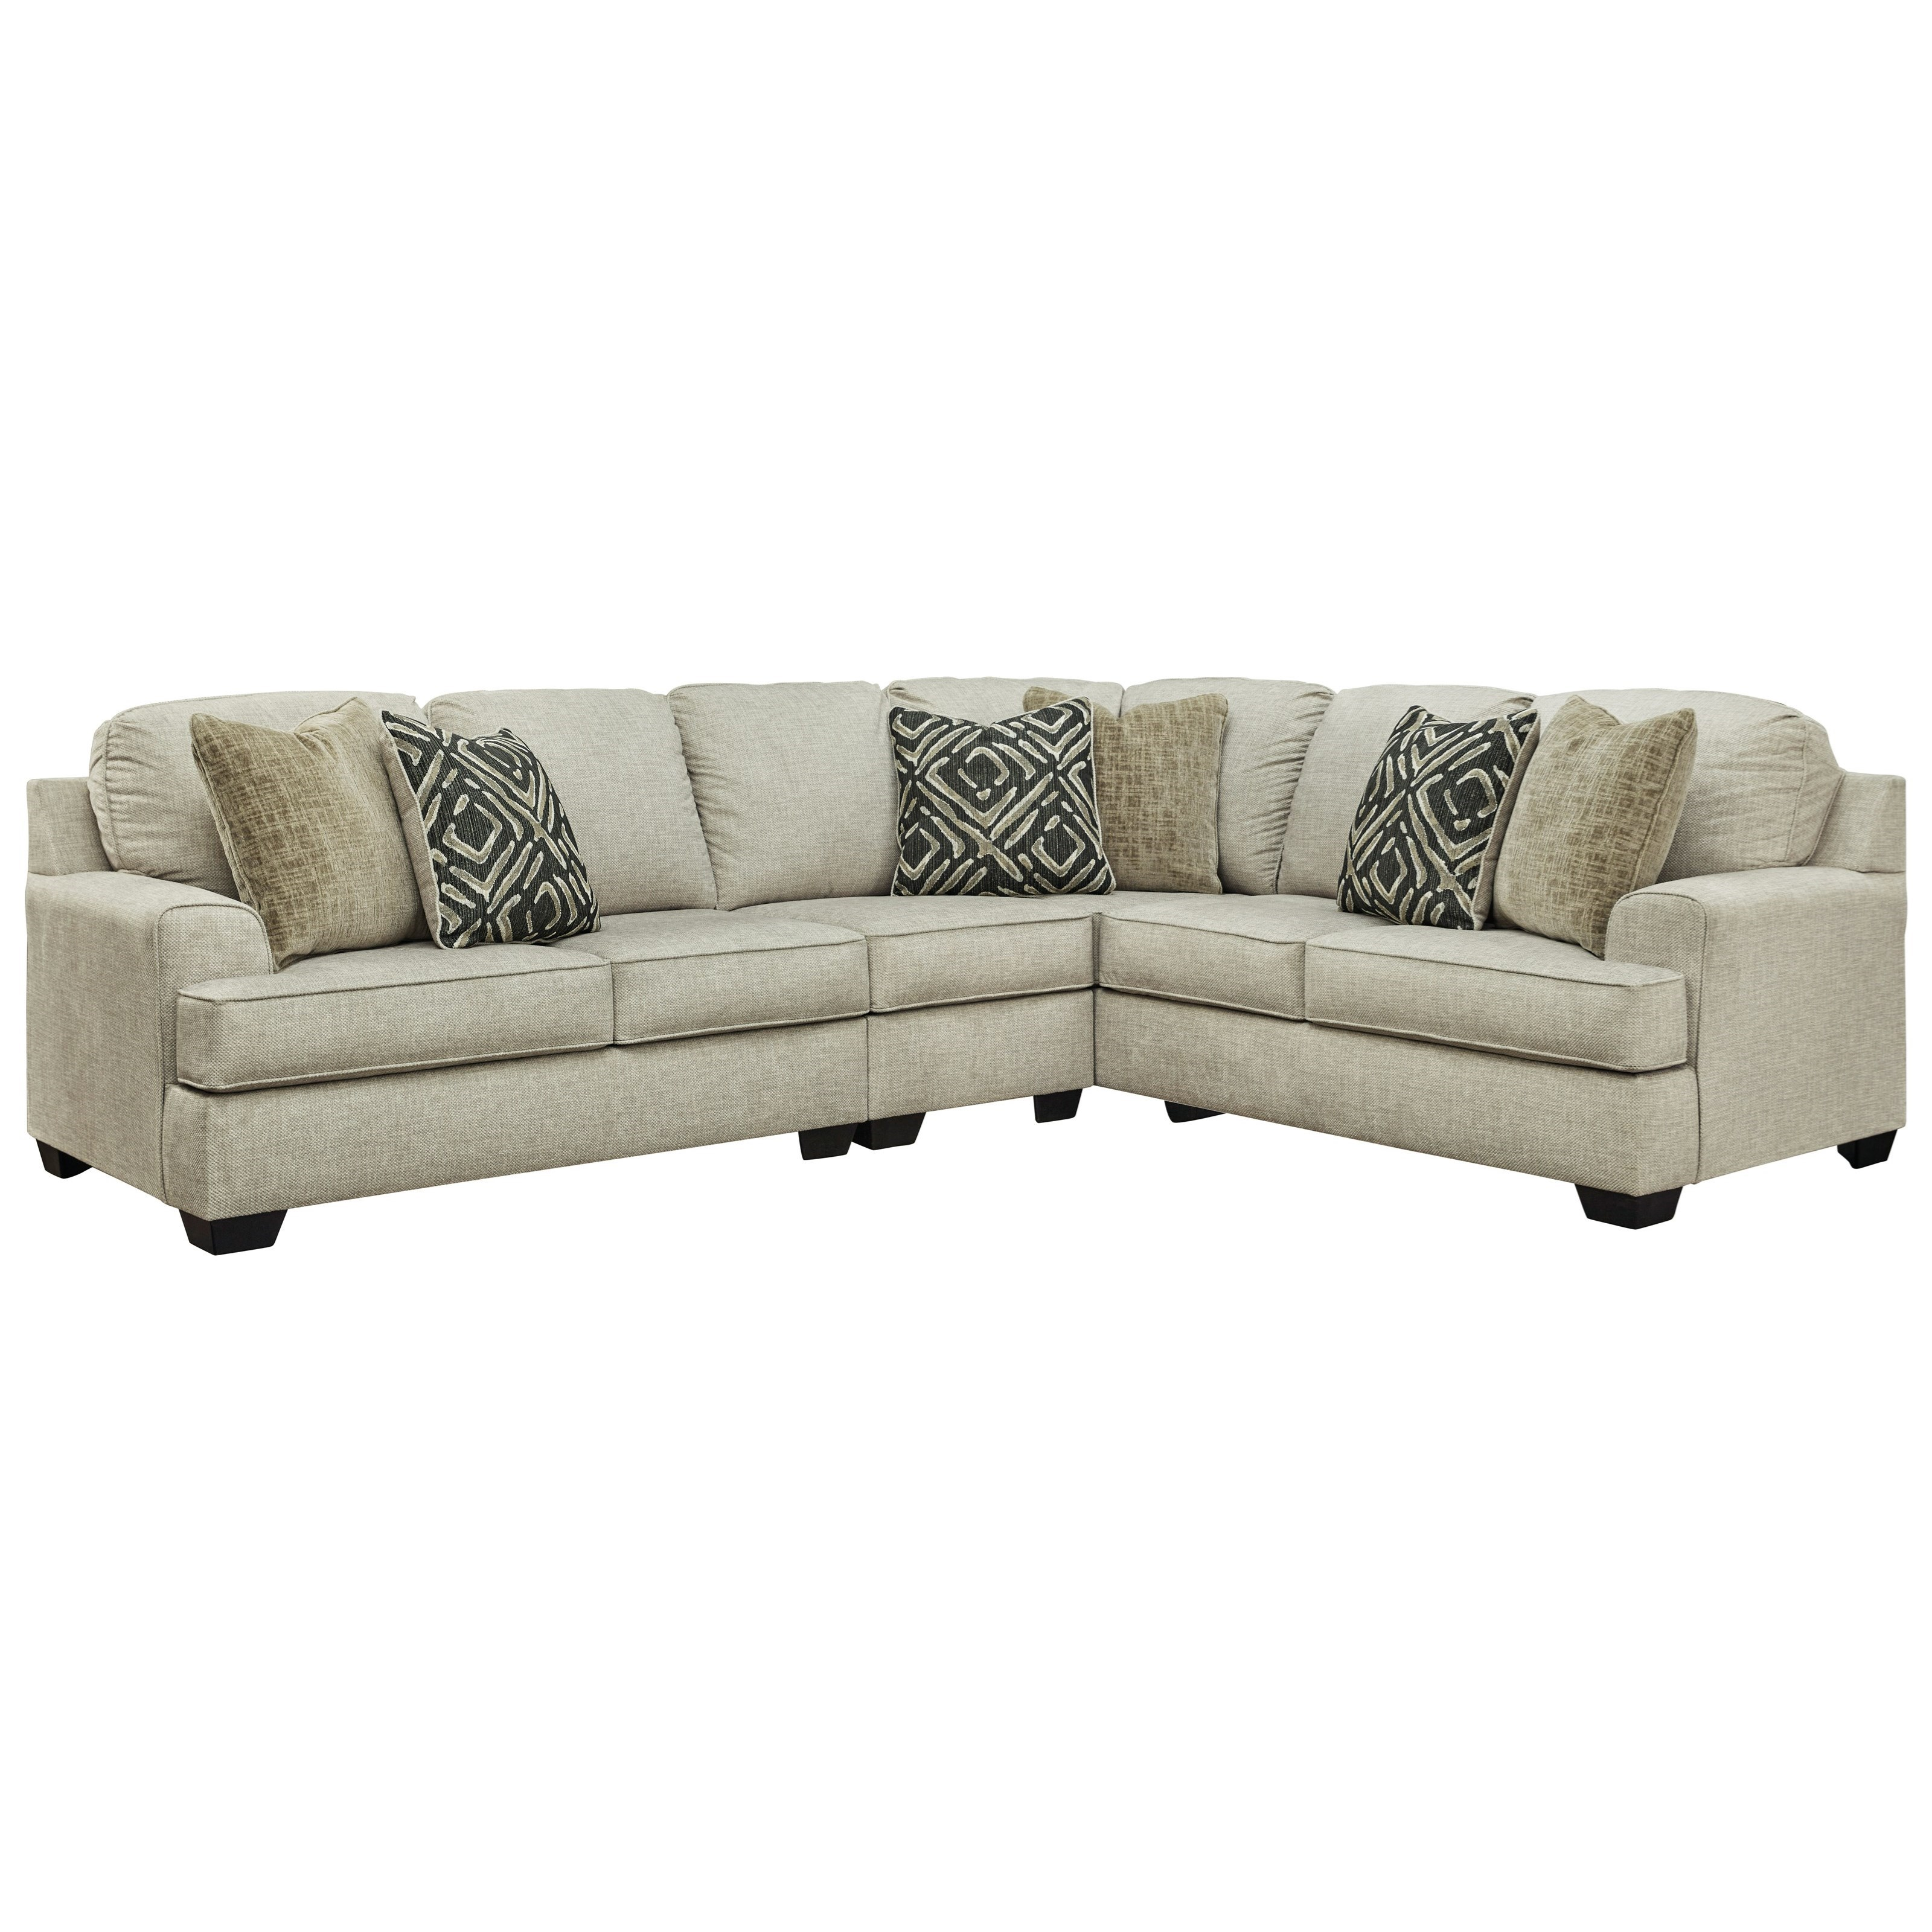 Wellhaven 3-Piece Sectional by Benchcraft at Value City Furniture